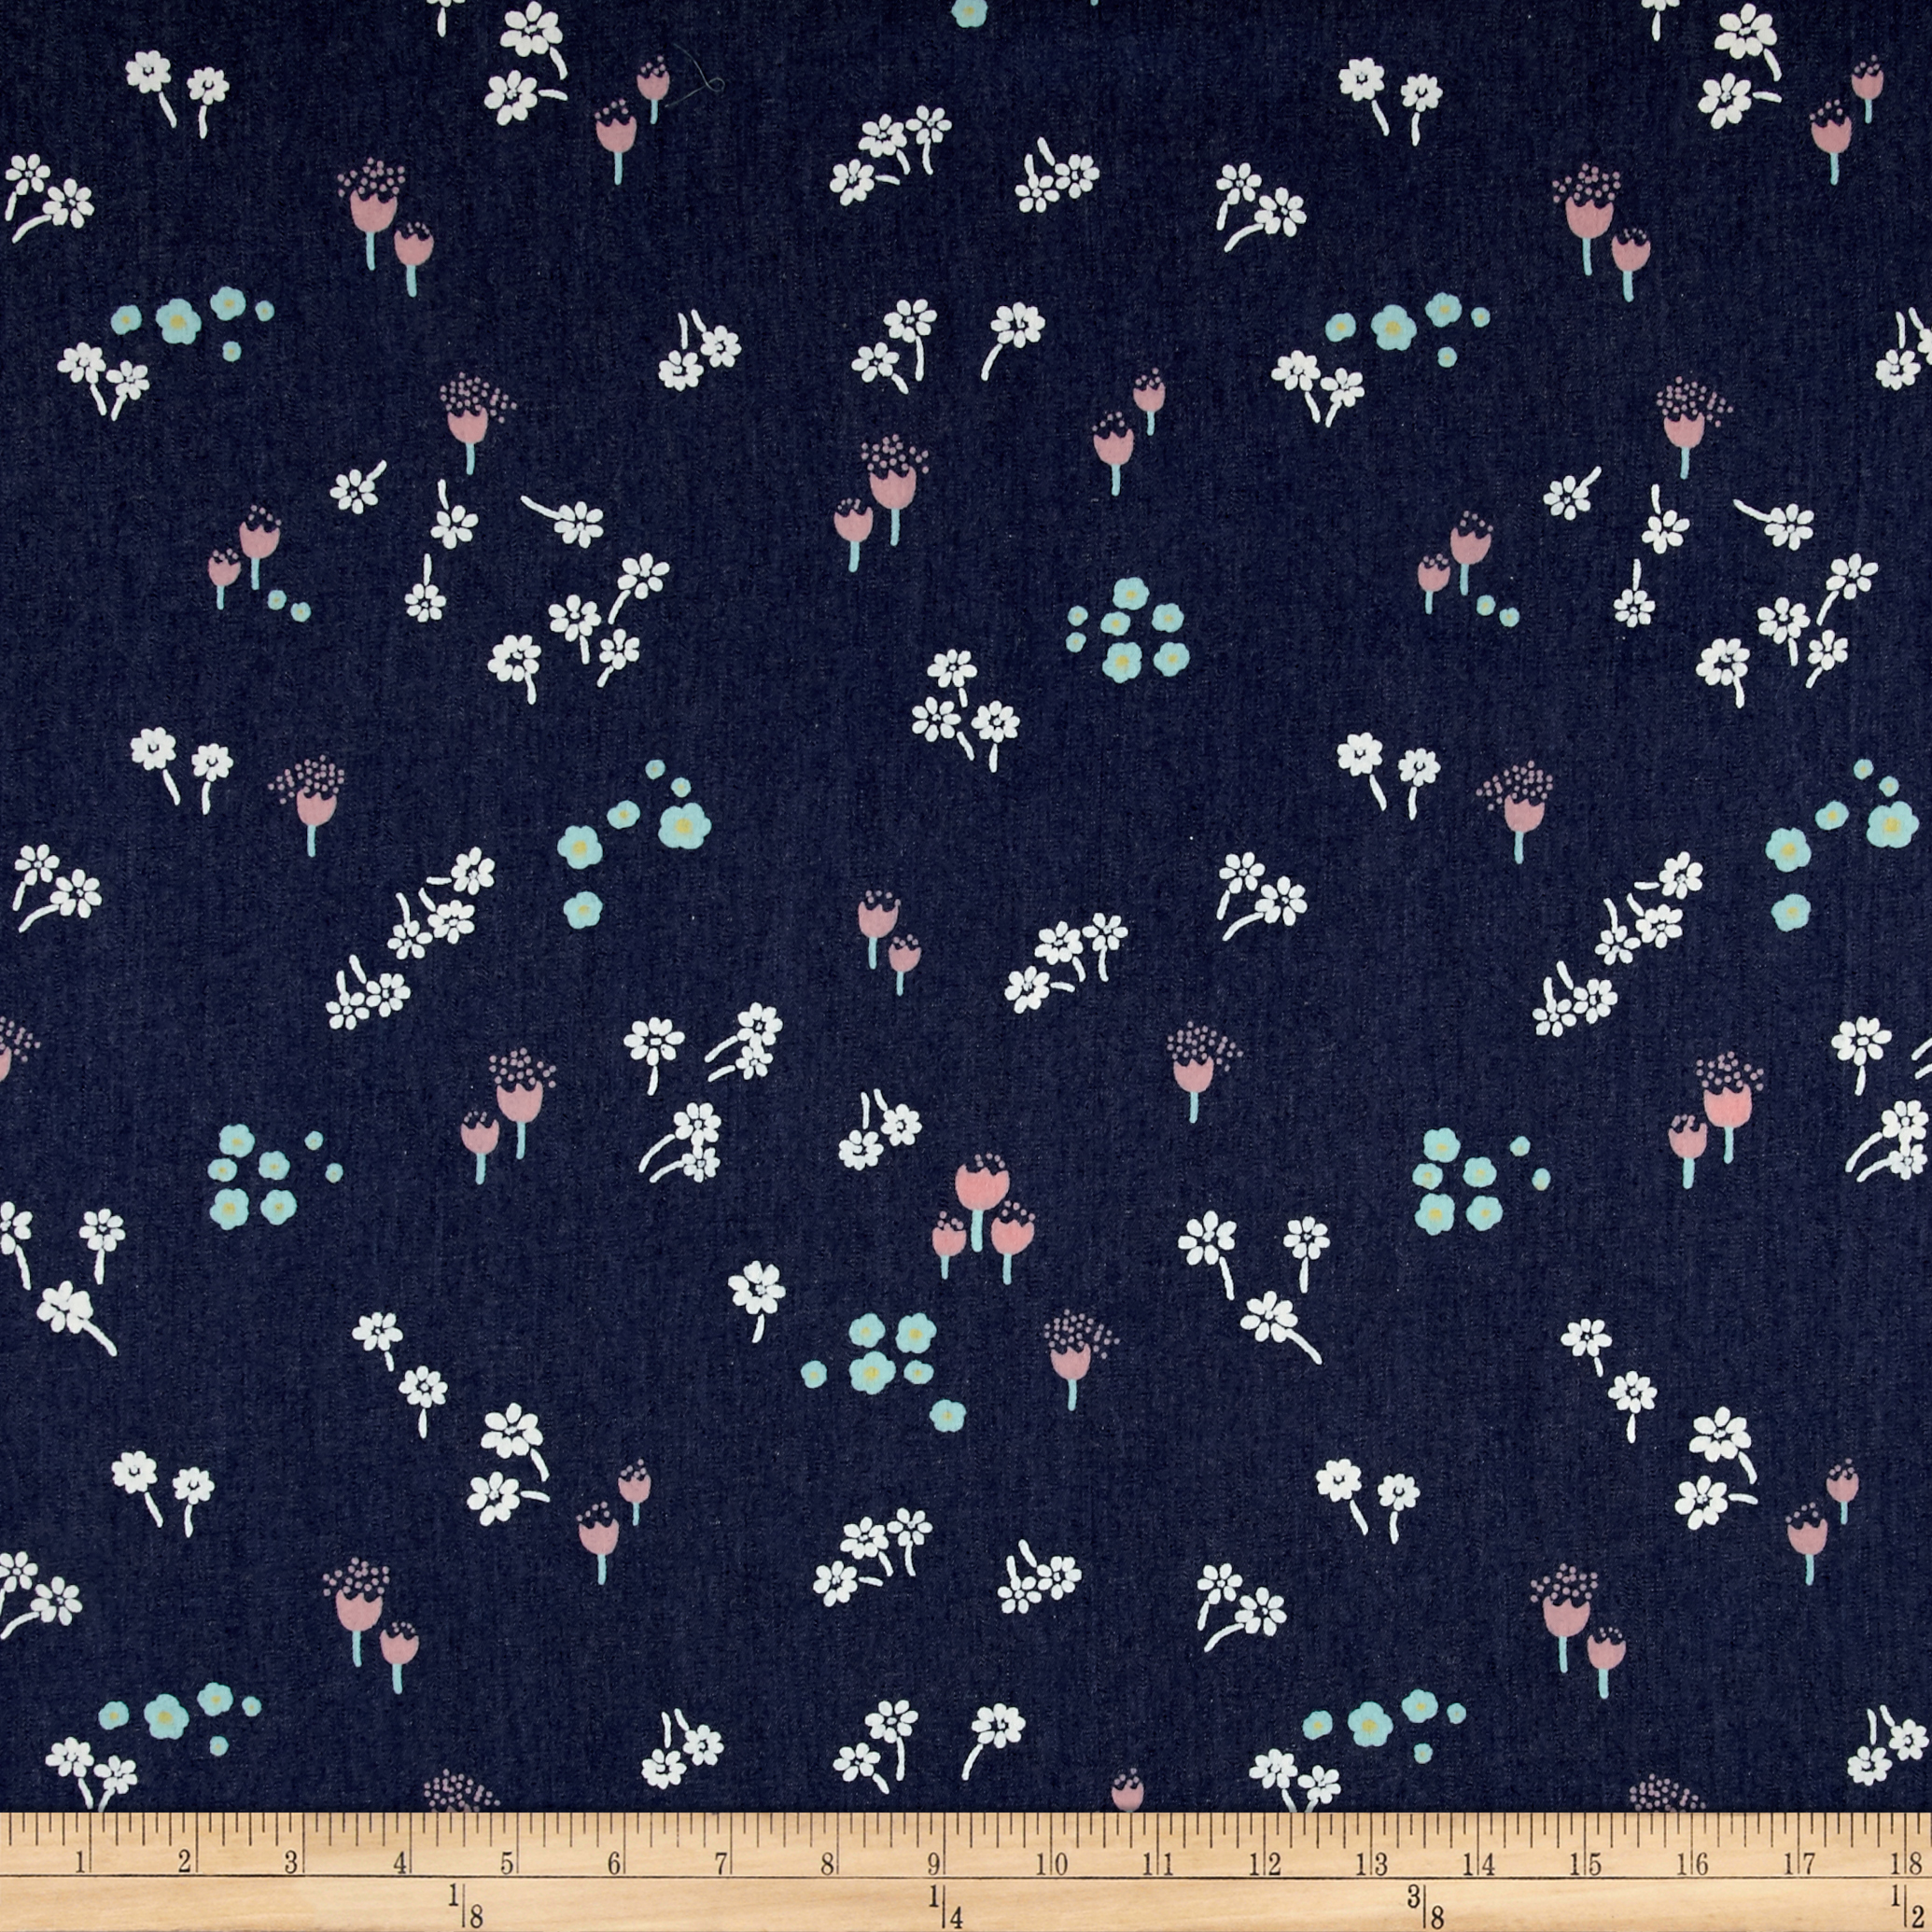 Art Gallery Denim Print Ditsy Abrasion Fabric by Art Gallery in USA